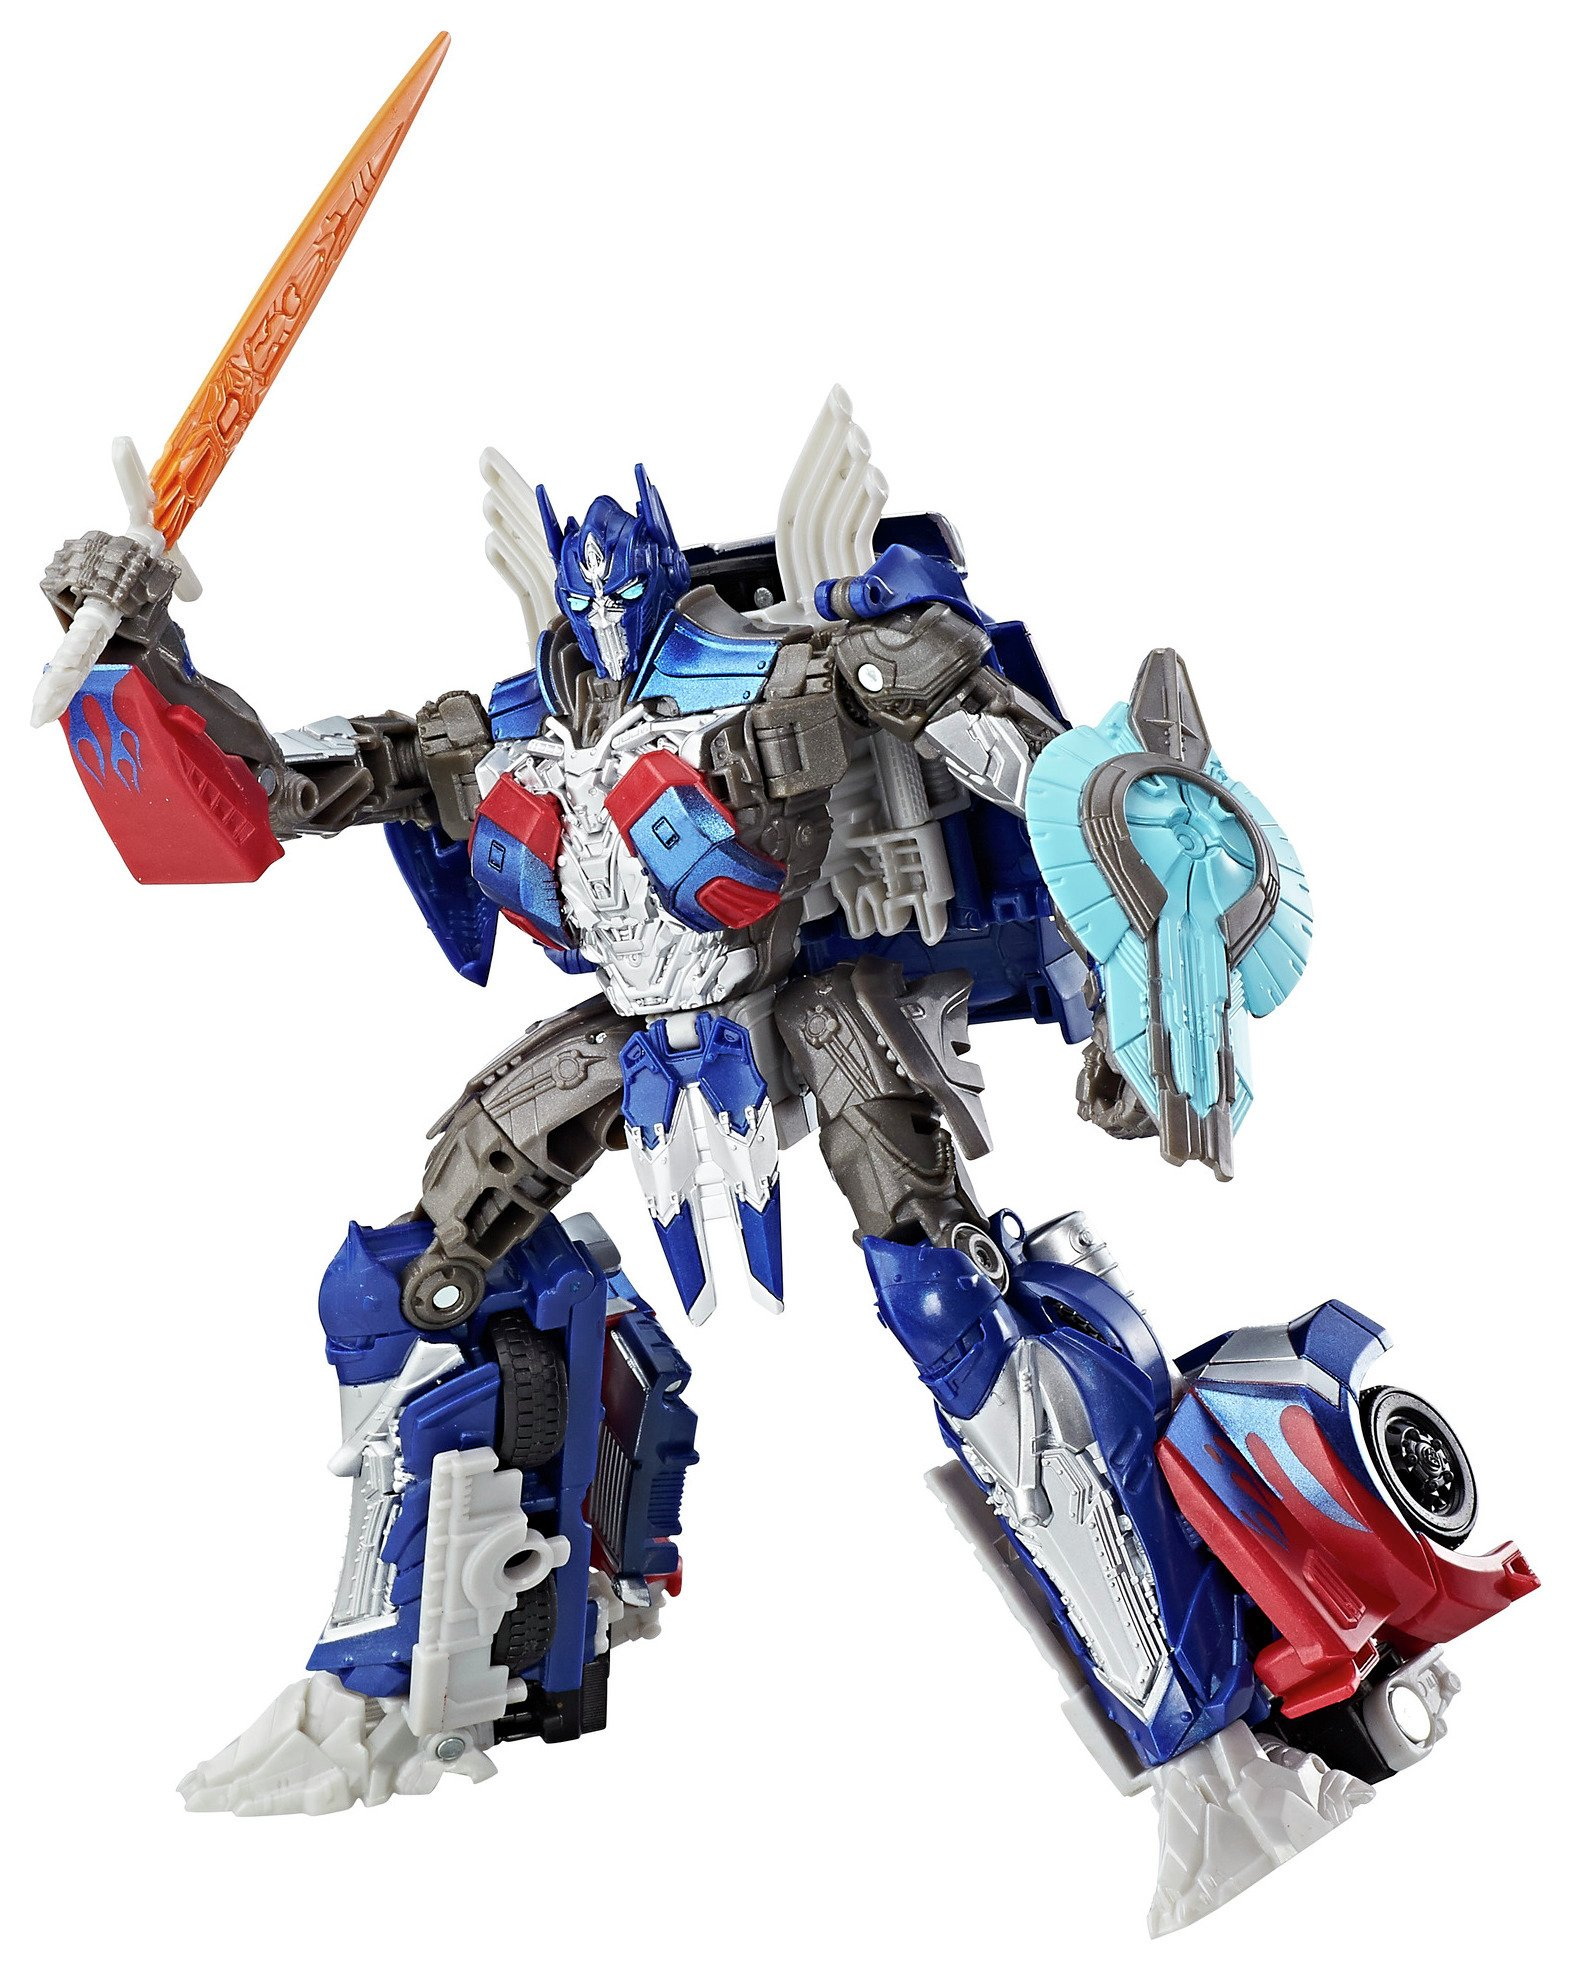 Image of Transformers Premier Edition Voyager Class Optimus Prime